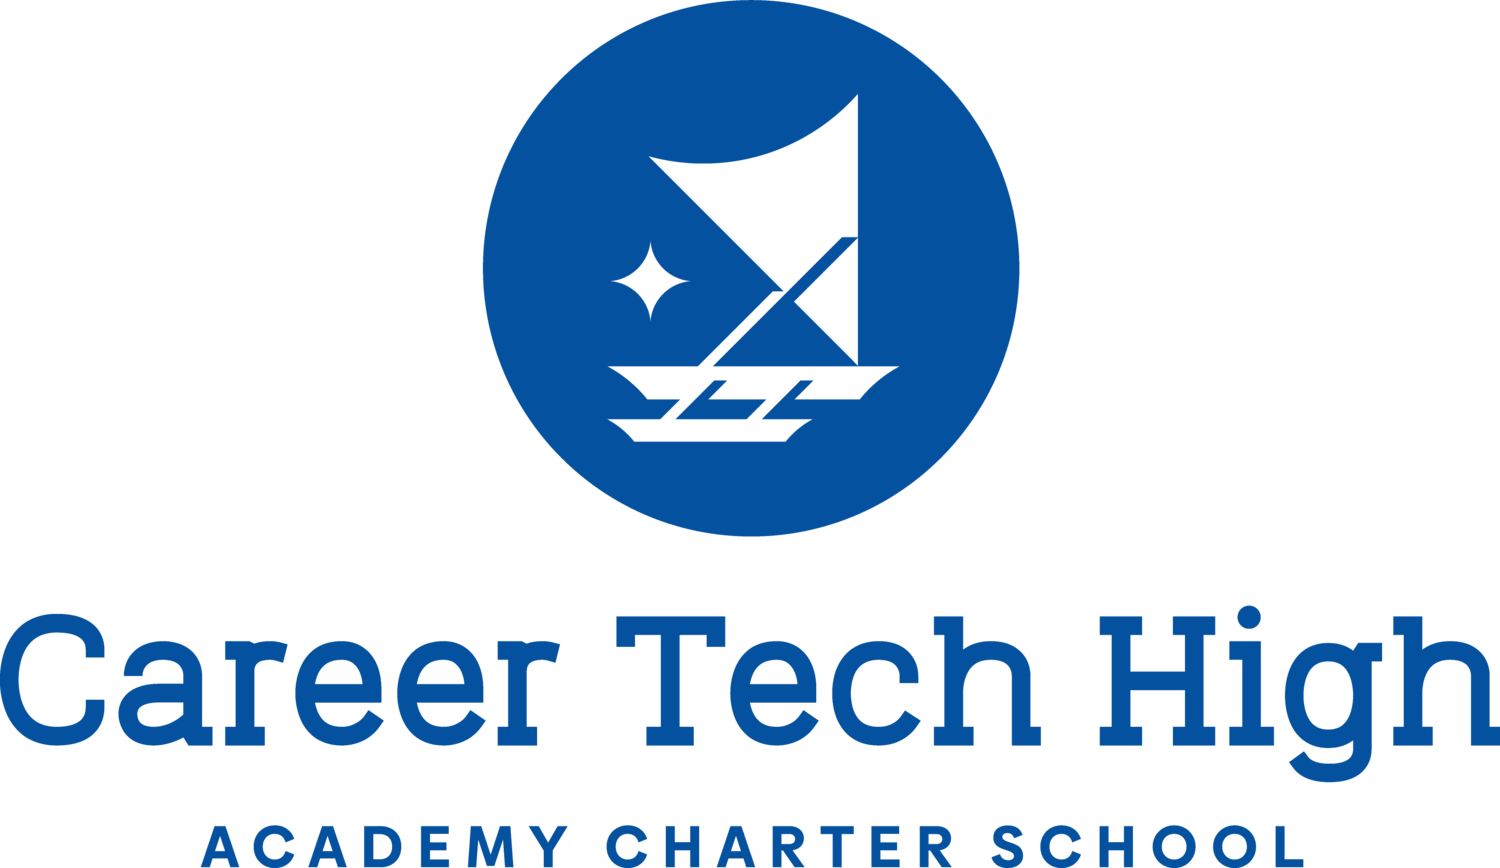 Career Tech High School